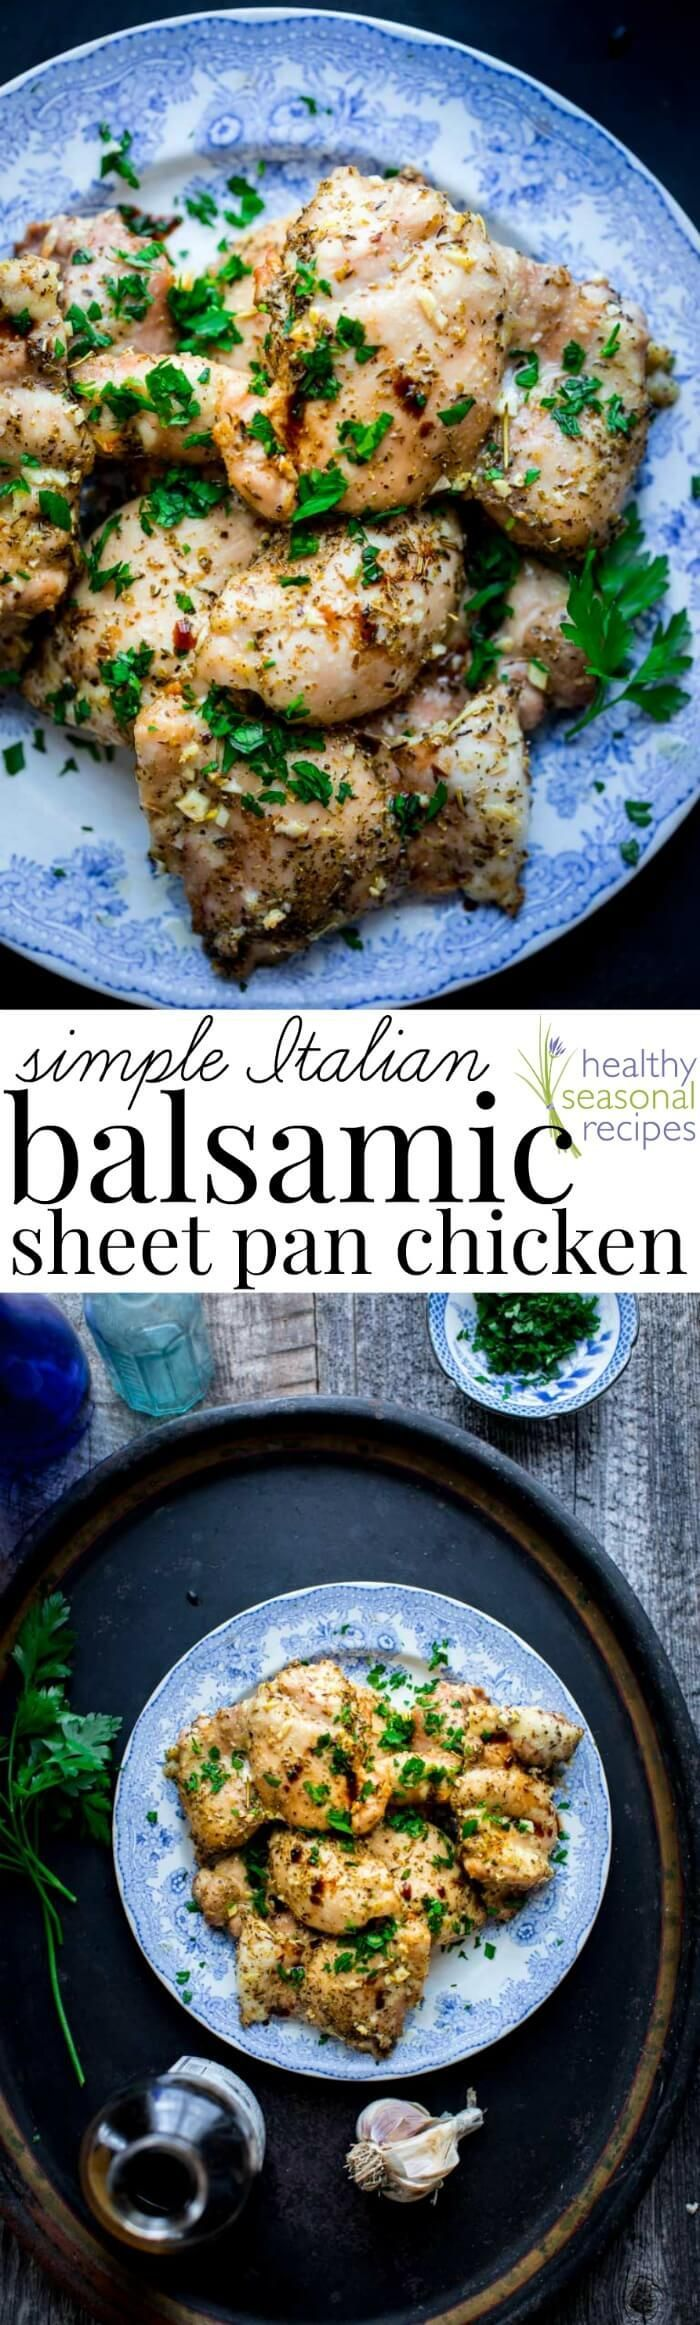 Do you have 5 minutes? Then you have enough time to get a batch of this Simple Italian Balsamic Sheet Pan Chicken into the oven. I am not exaggerating when I say the hardest part of the whole recipe is chopping one clove of garlic. And people, I know we can do that, even on …